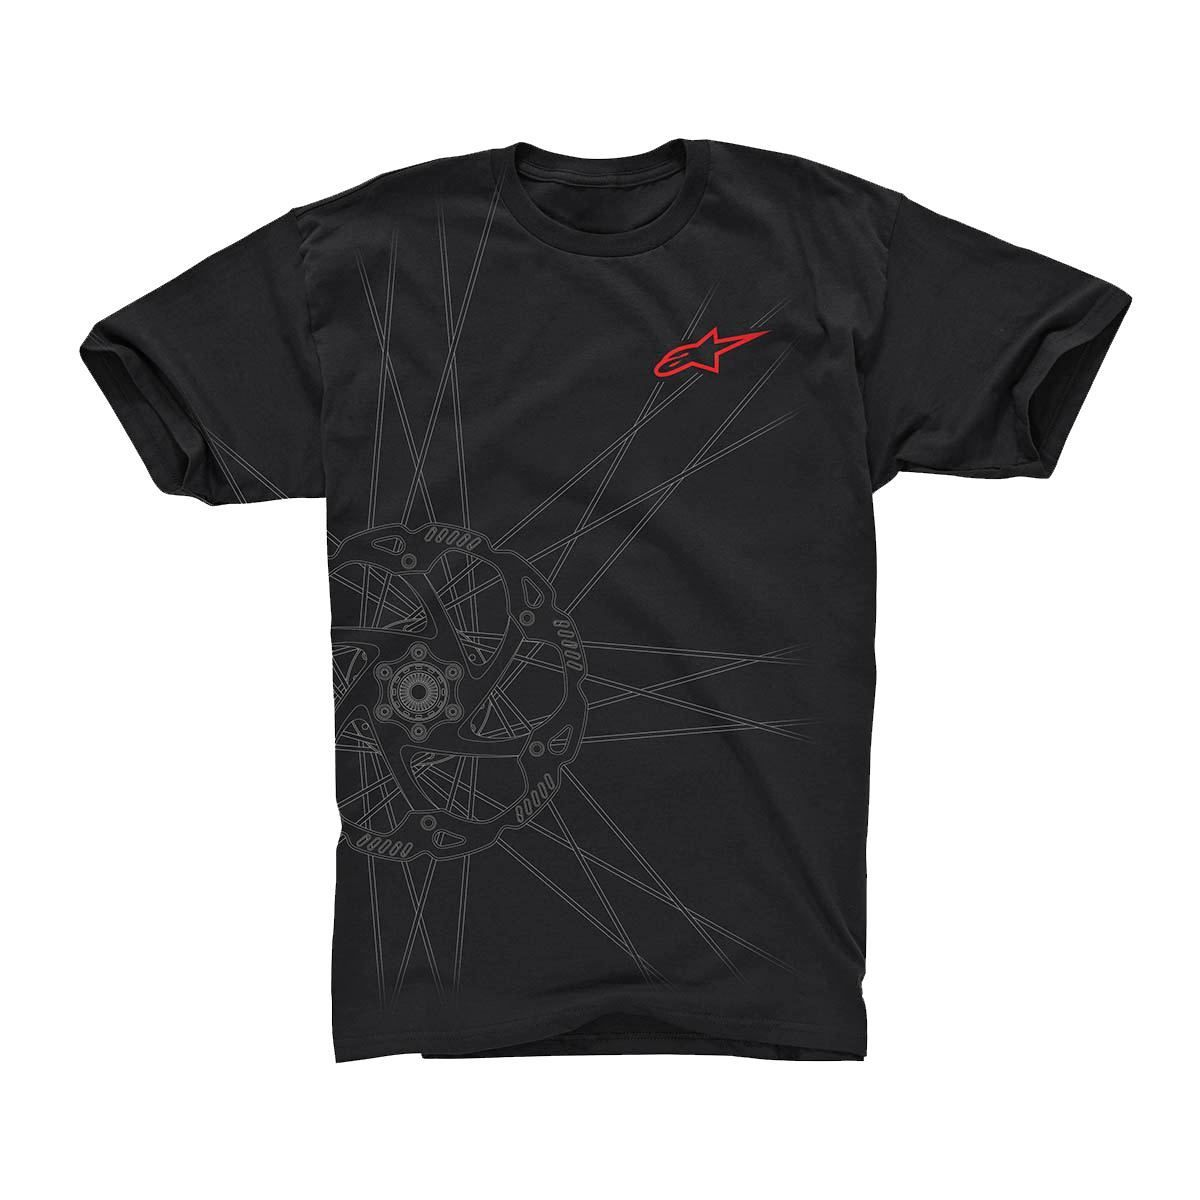 Alpinestars Spokes Tee 2017: Black 2Xl